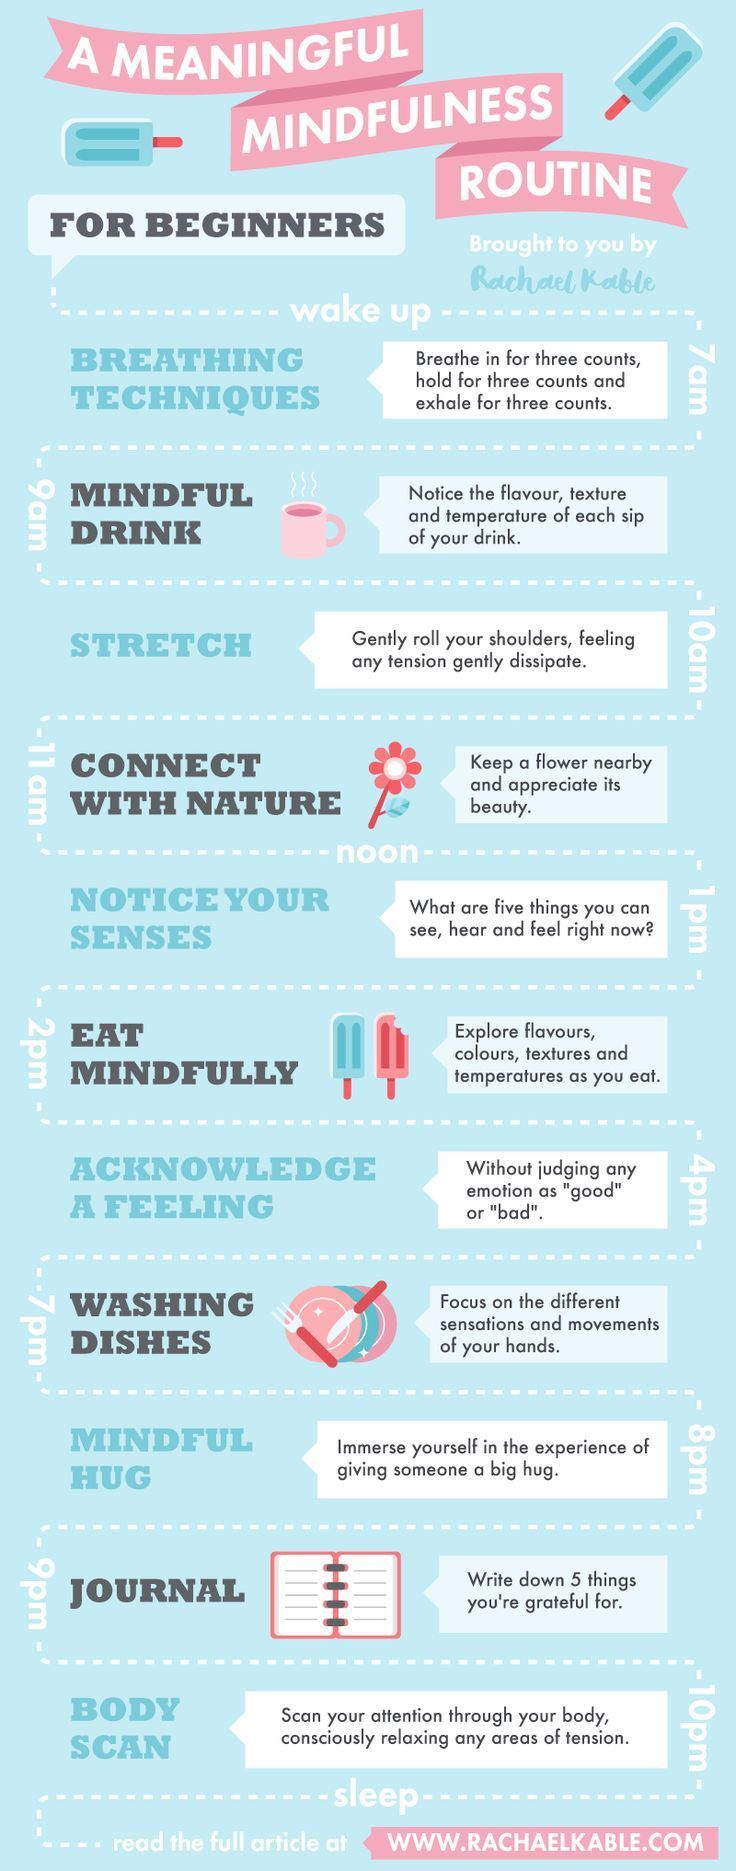 A meaningful mindfulness routine for beginners, including mindful eating, breathing, meditating and more!